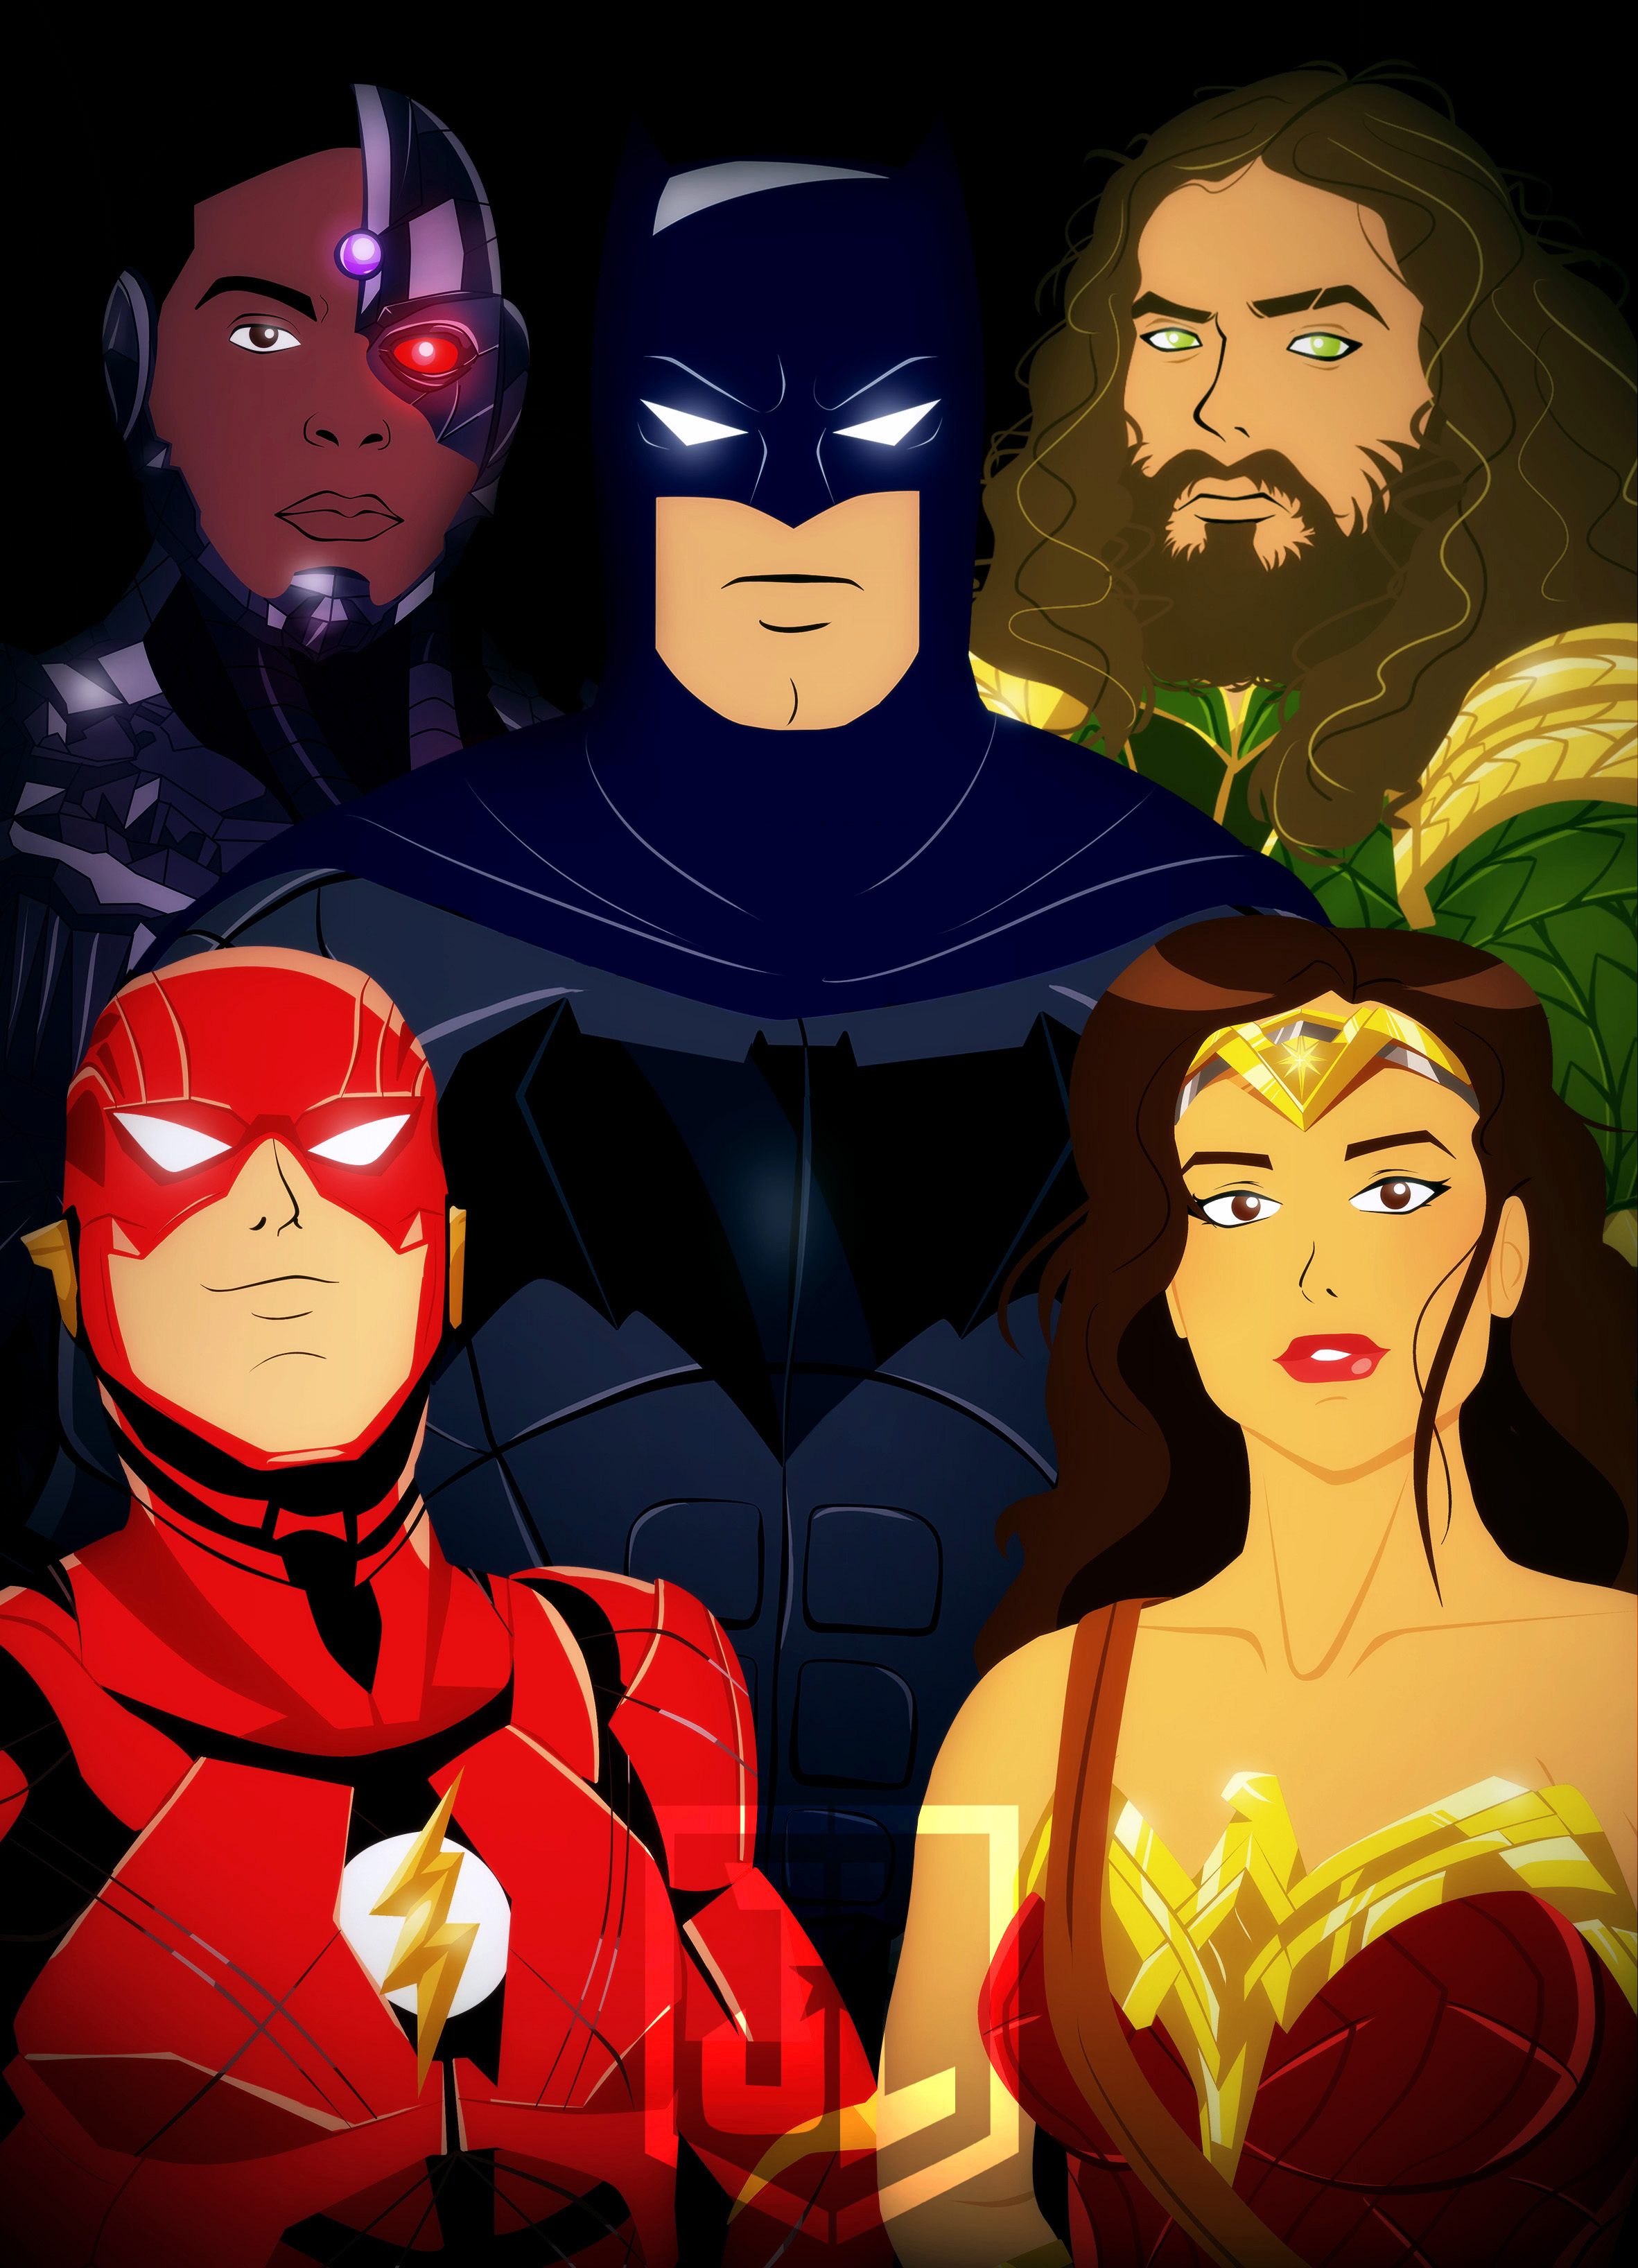 Justice League Animated Movie Poster By Bat123spider On Deviantart